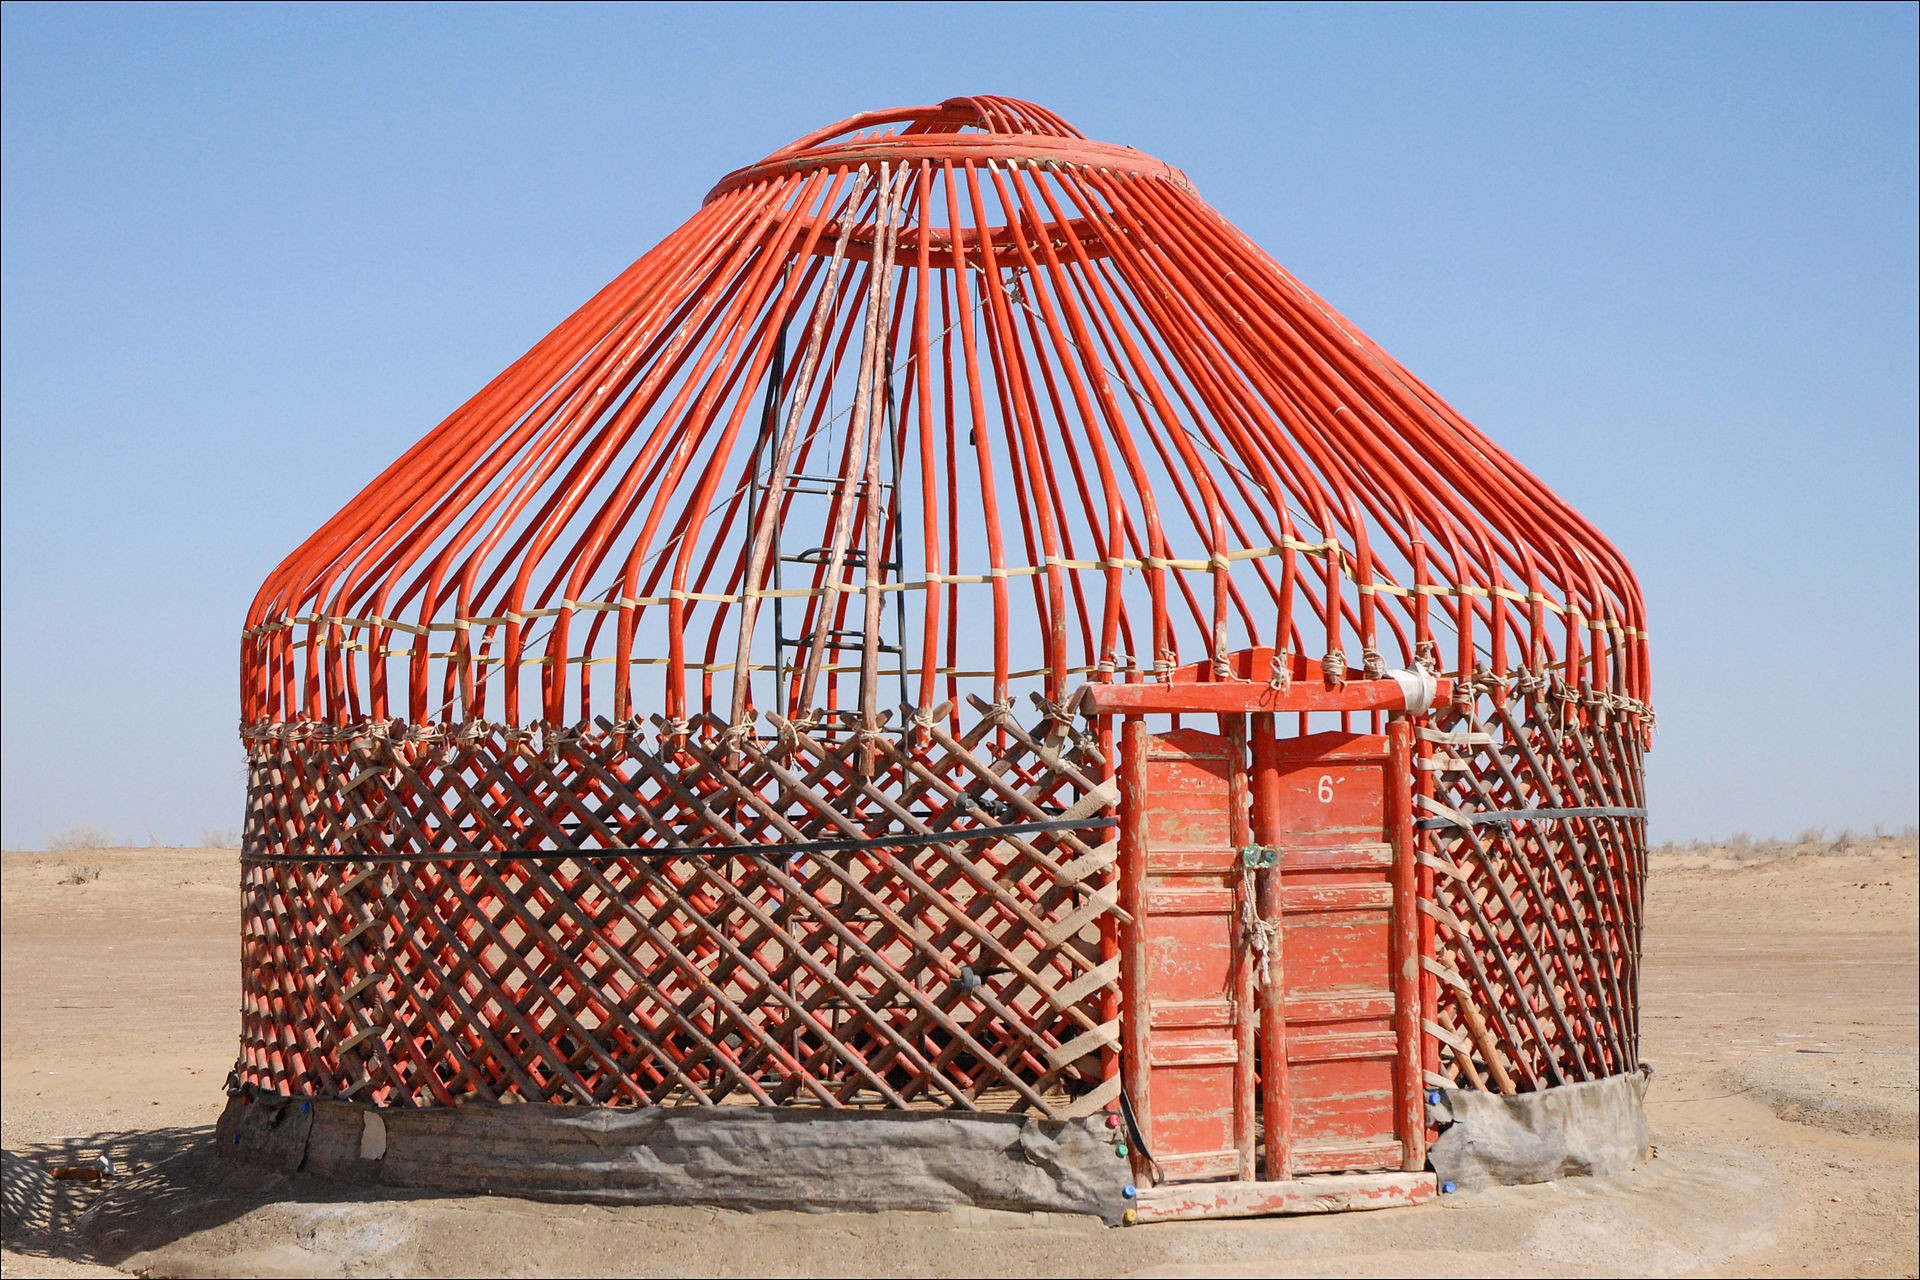 Frame of a yurt in Uzbekistan By Jean-Pierre Dalbéra from Paris, France—Armature d'une yourte (Khorezm, Ouzbékistan), CC BY 2.0, https://commons.wikimedia.org/w/index.php?curid=24666849